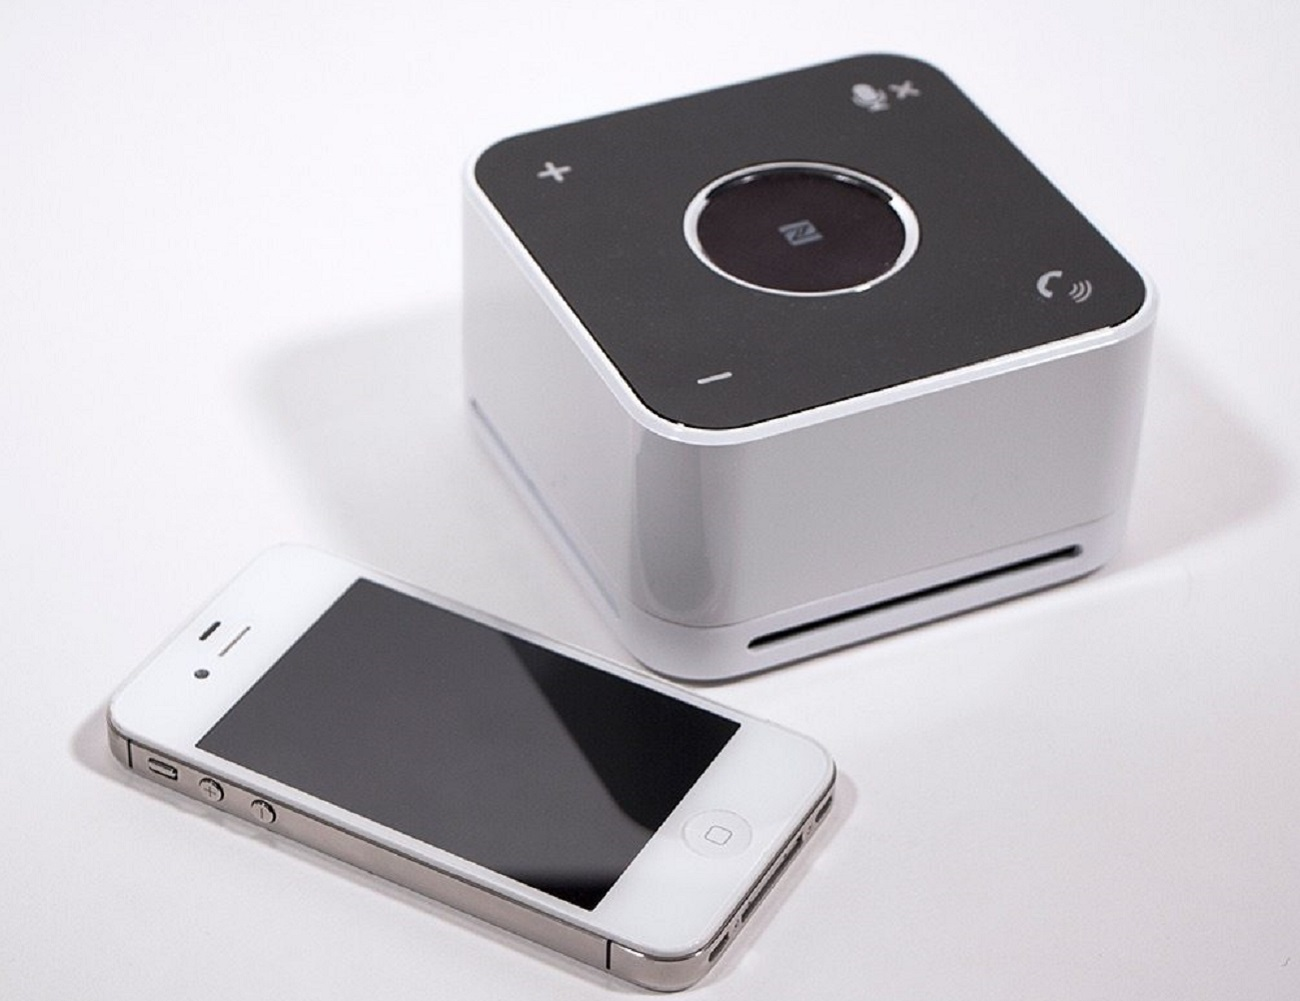 The Conference Mate NFC Speakerphone